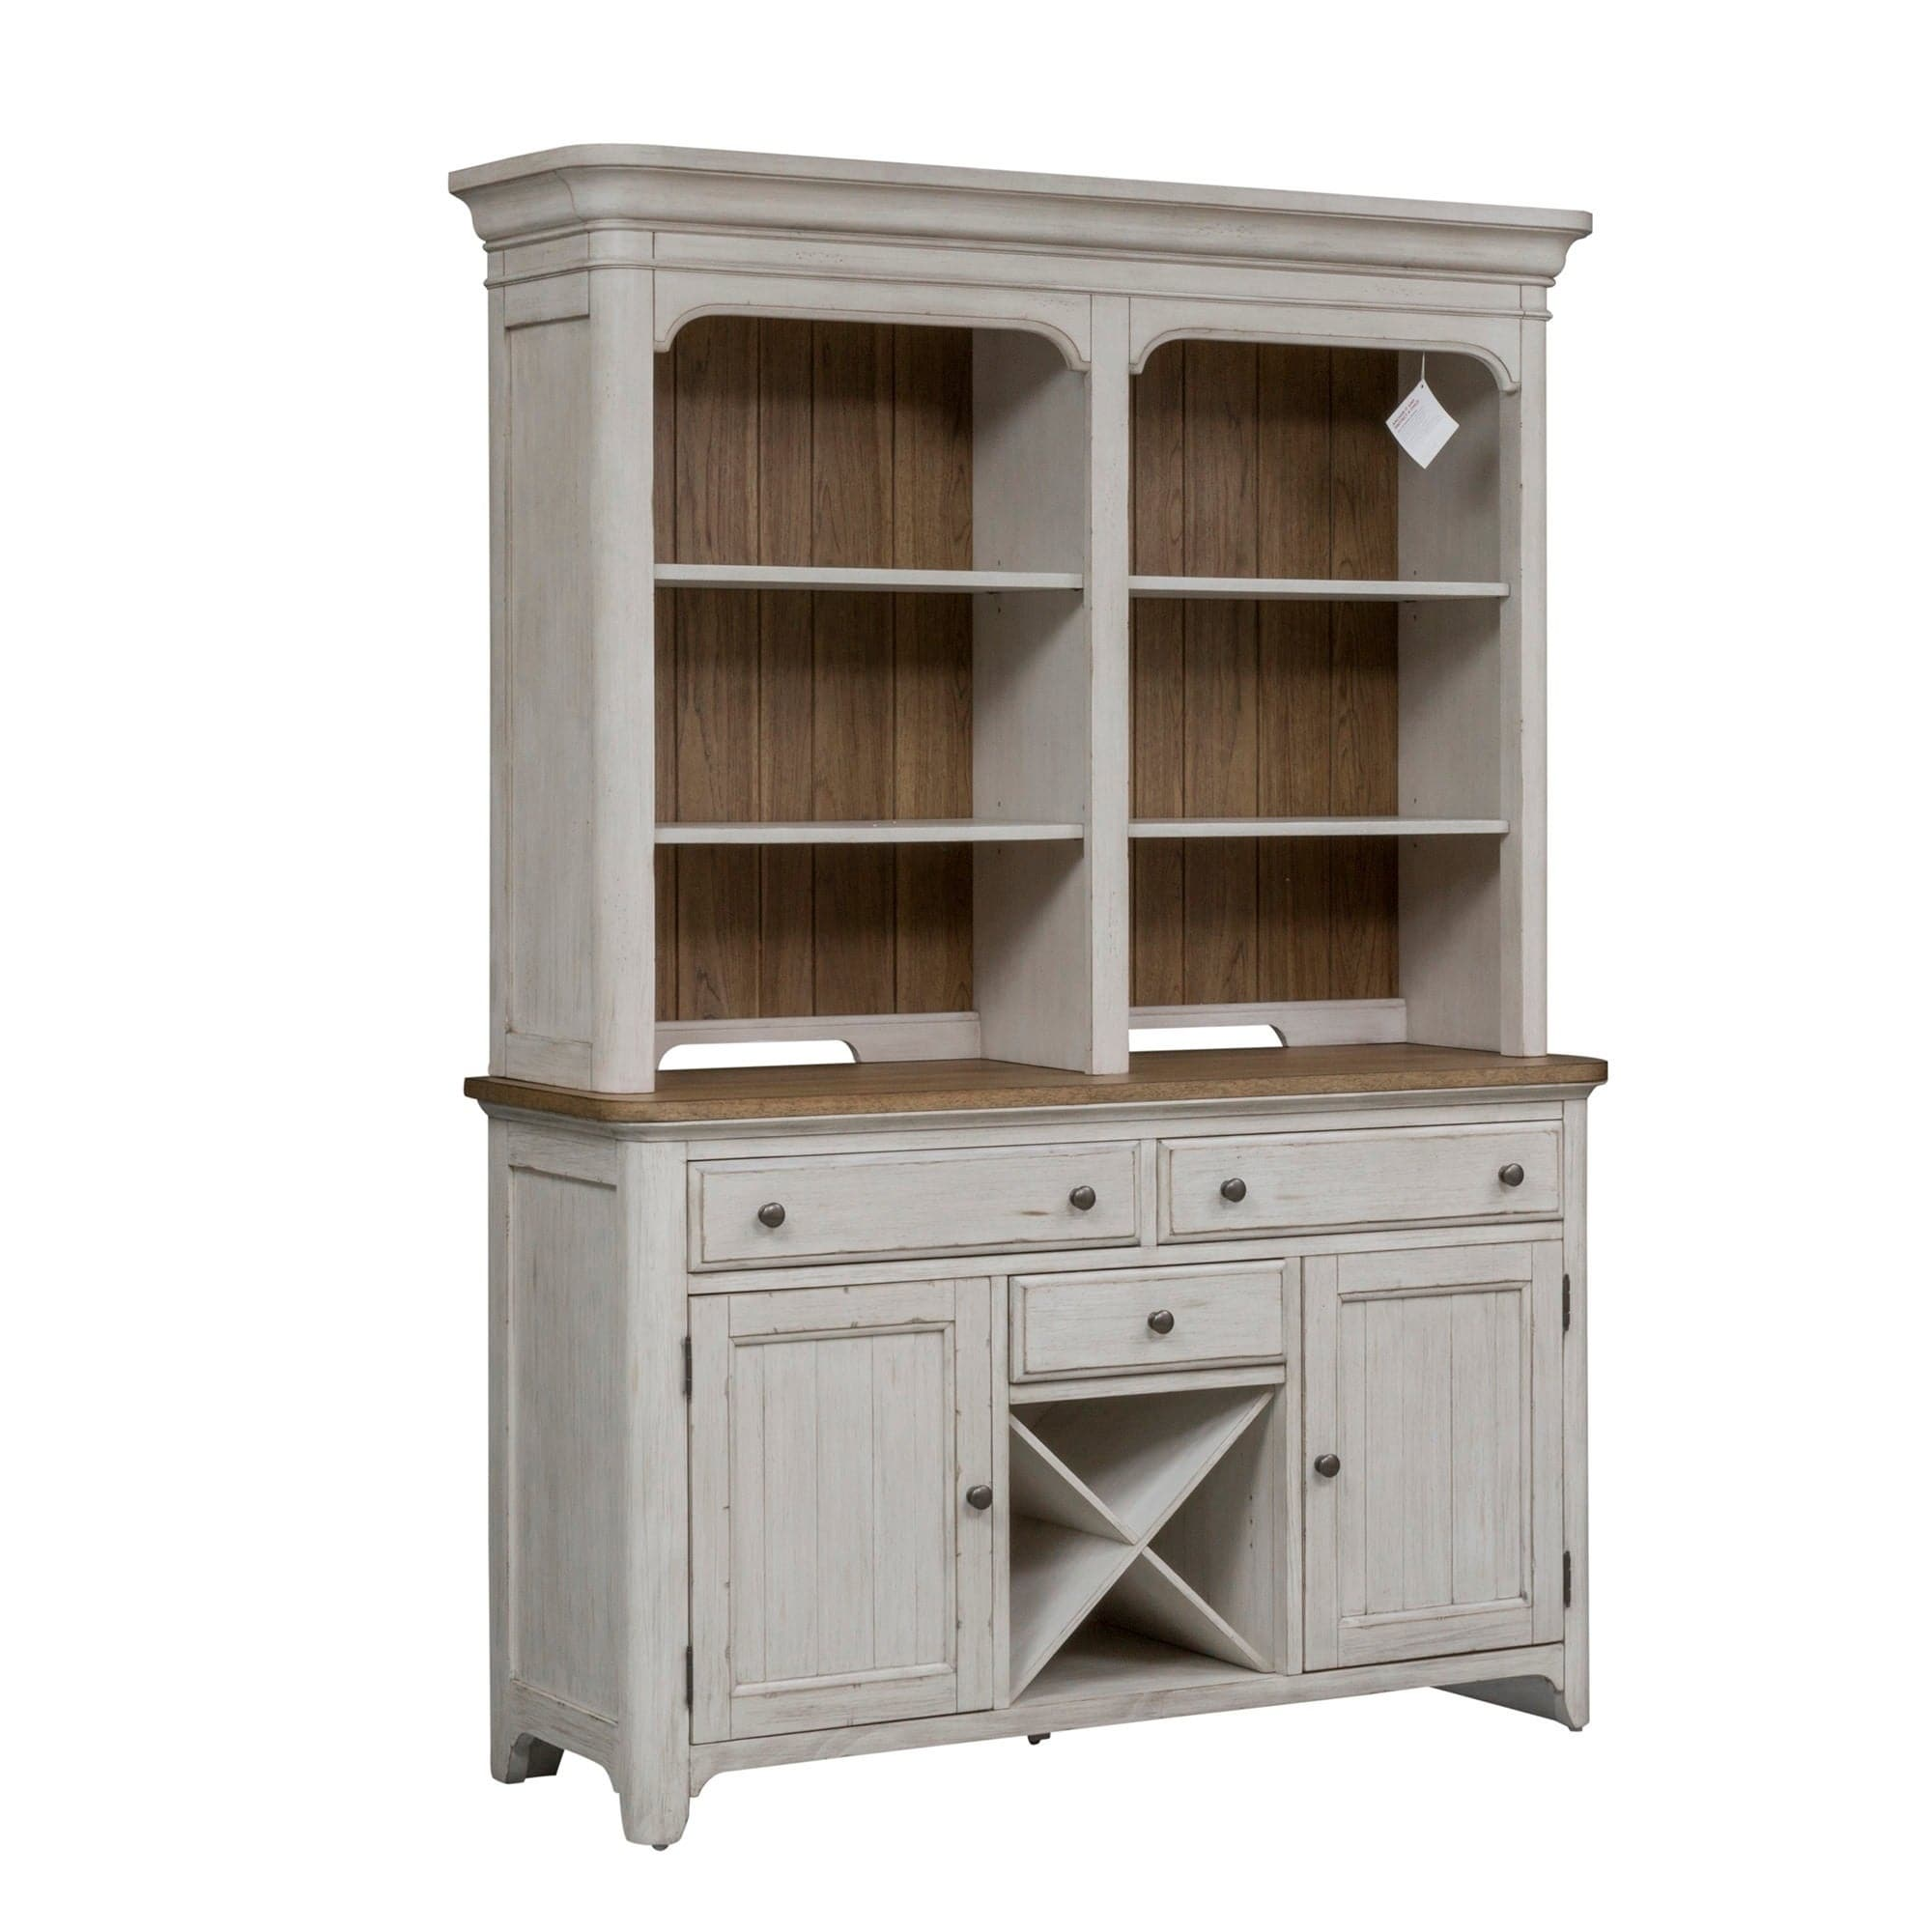 The Gray Barn Patchwork Farms Antique White Hutch And Buffet